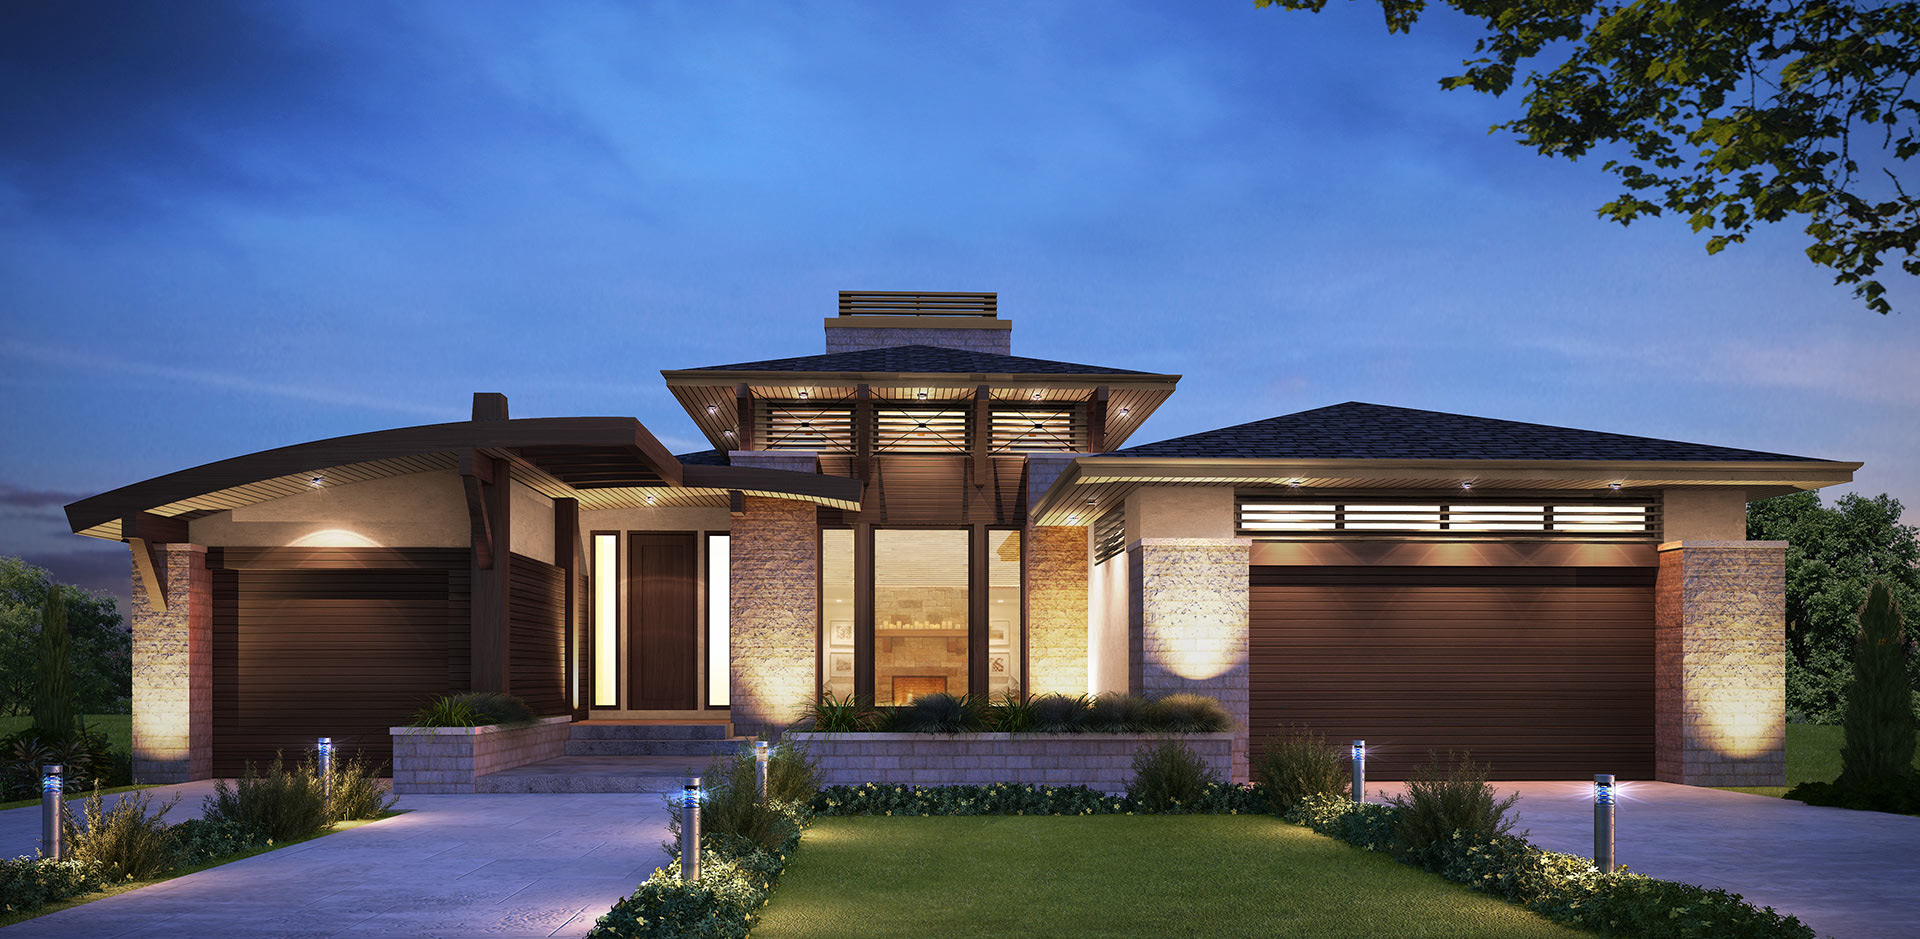 luxury-home-exterior-4